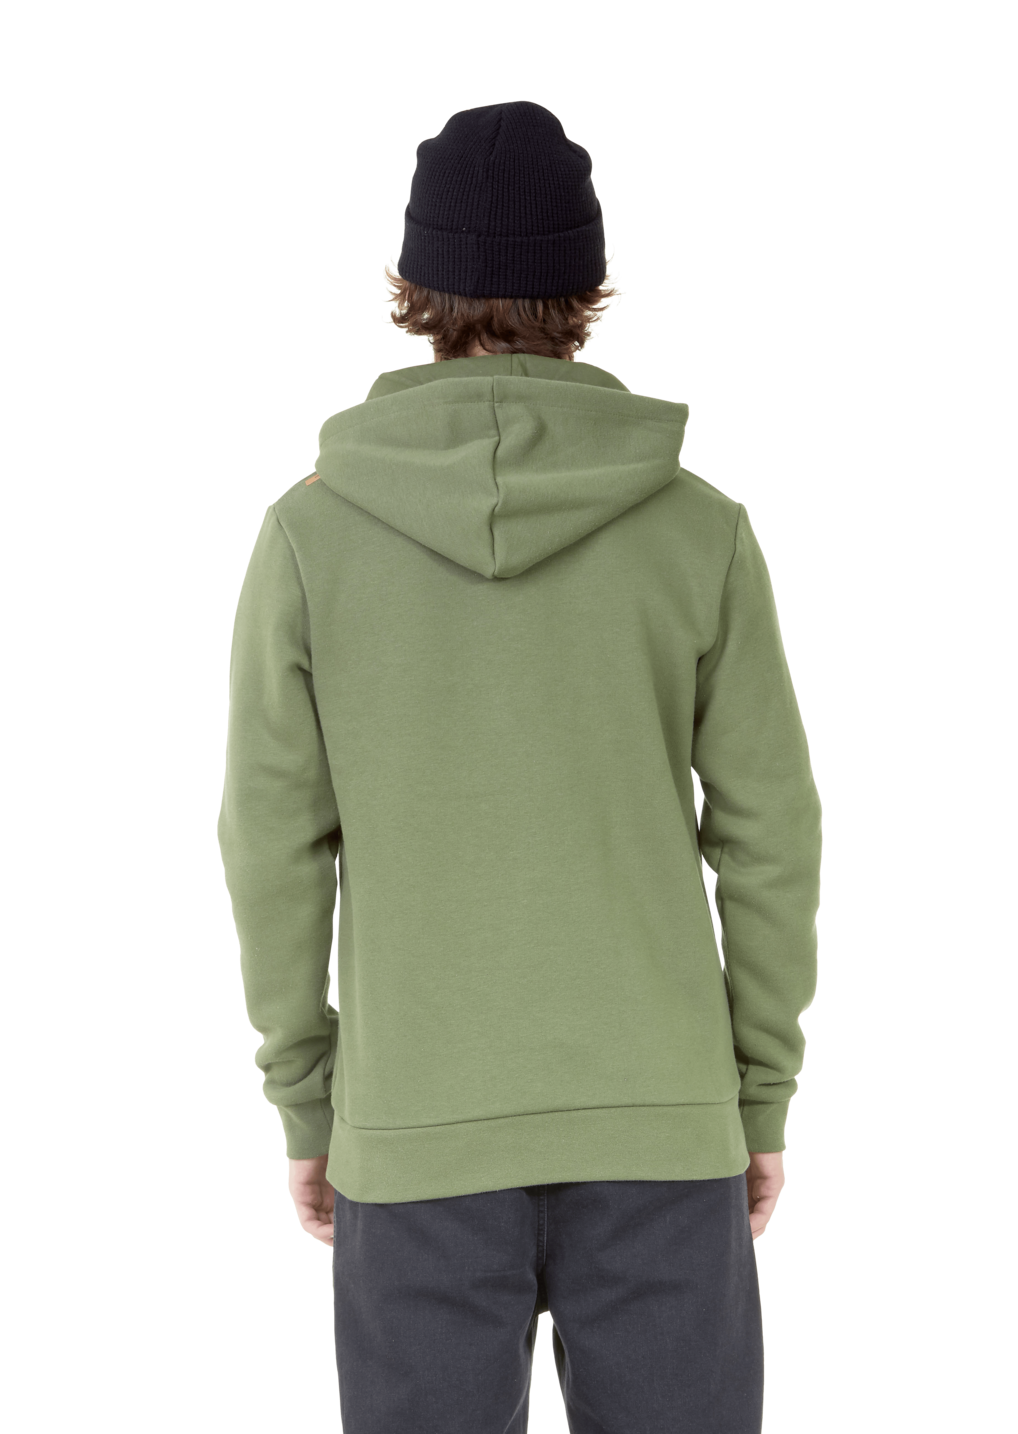 Sweat Picture Basement Flock Army Green